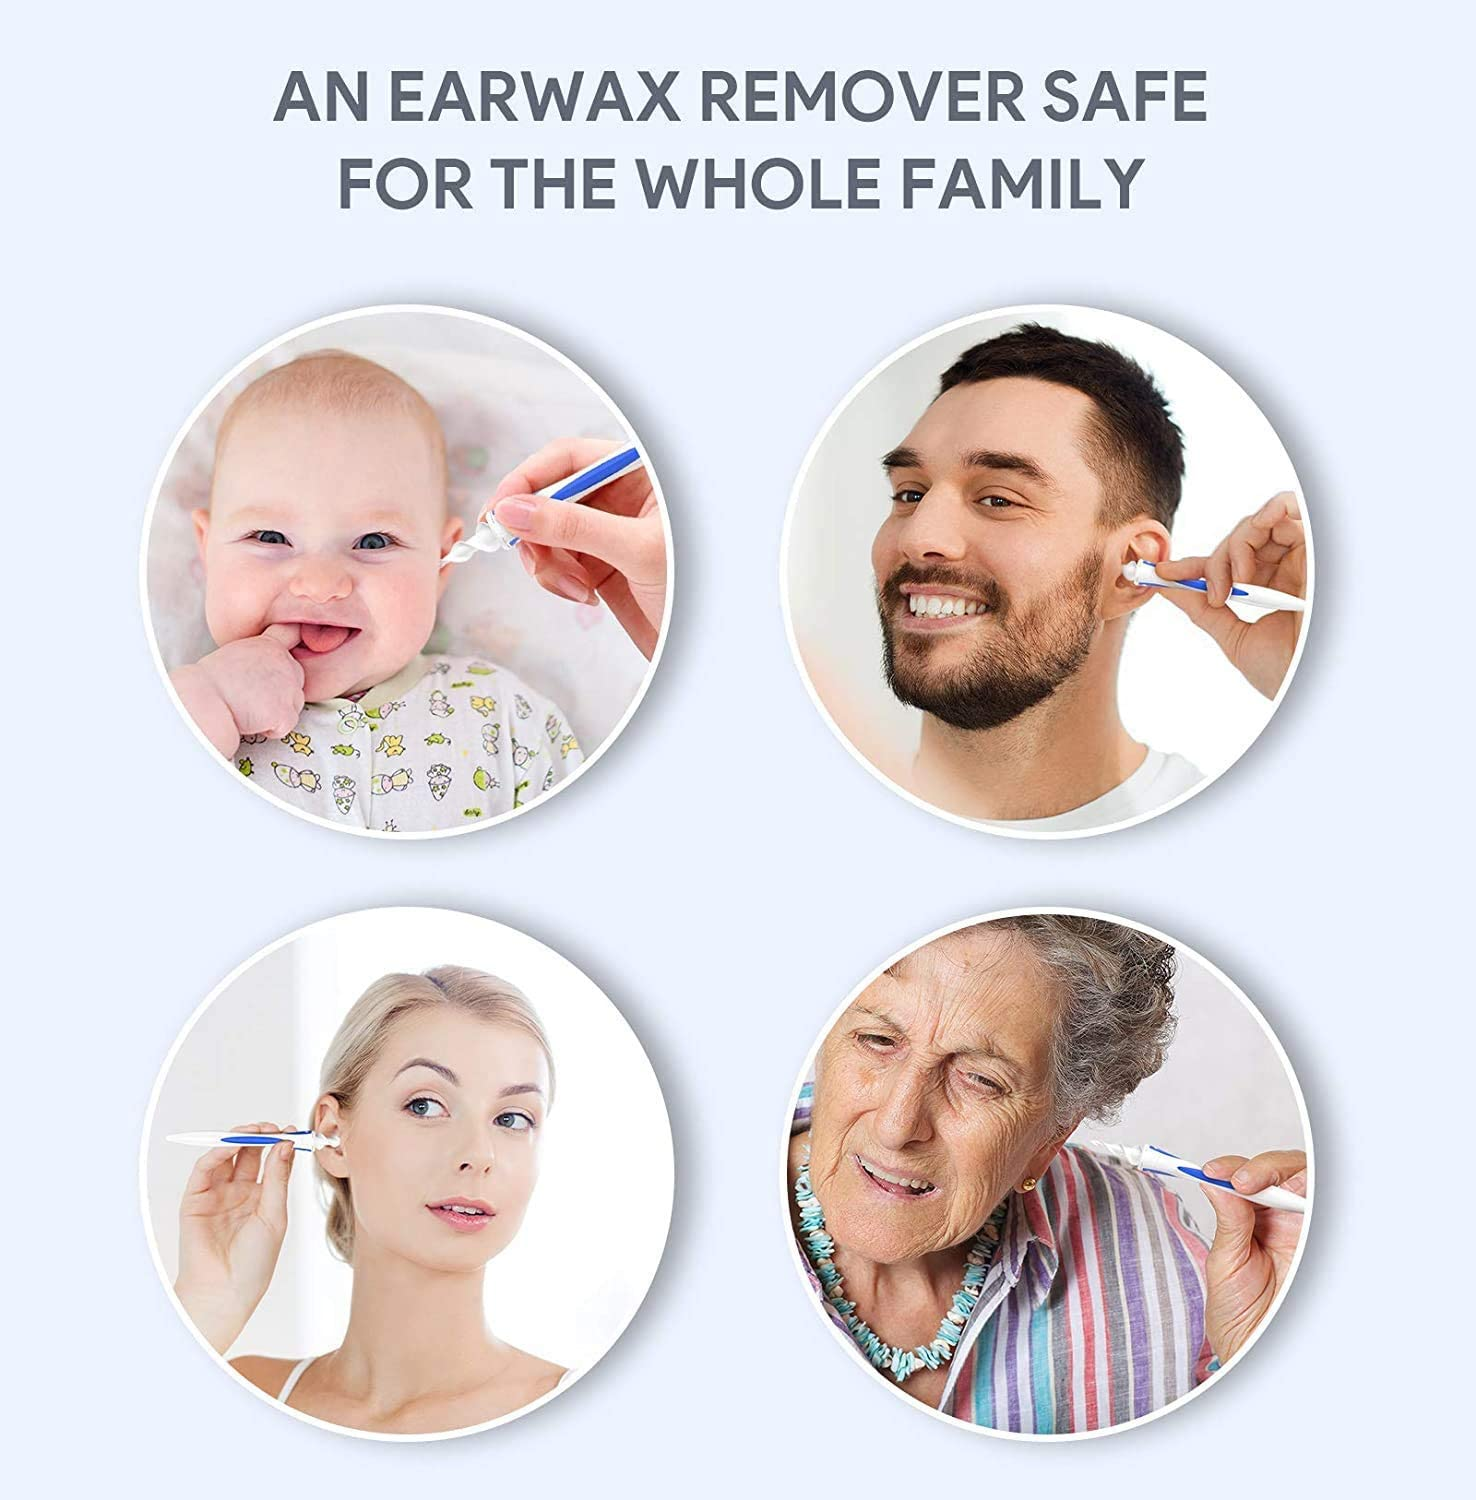 Twist Spiral Smart Earwax Remover Reusable Ear Picker Clean Kit Ear Wax Catcher 16 Tips for Adults Kids Humans Ear-Wax-Removal-Tool Silicone Ear Cleaner Safe Soft Ear Wax Remover